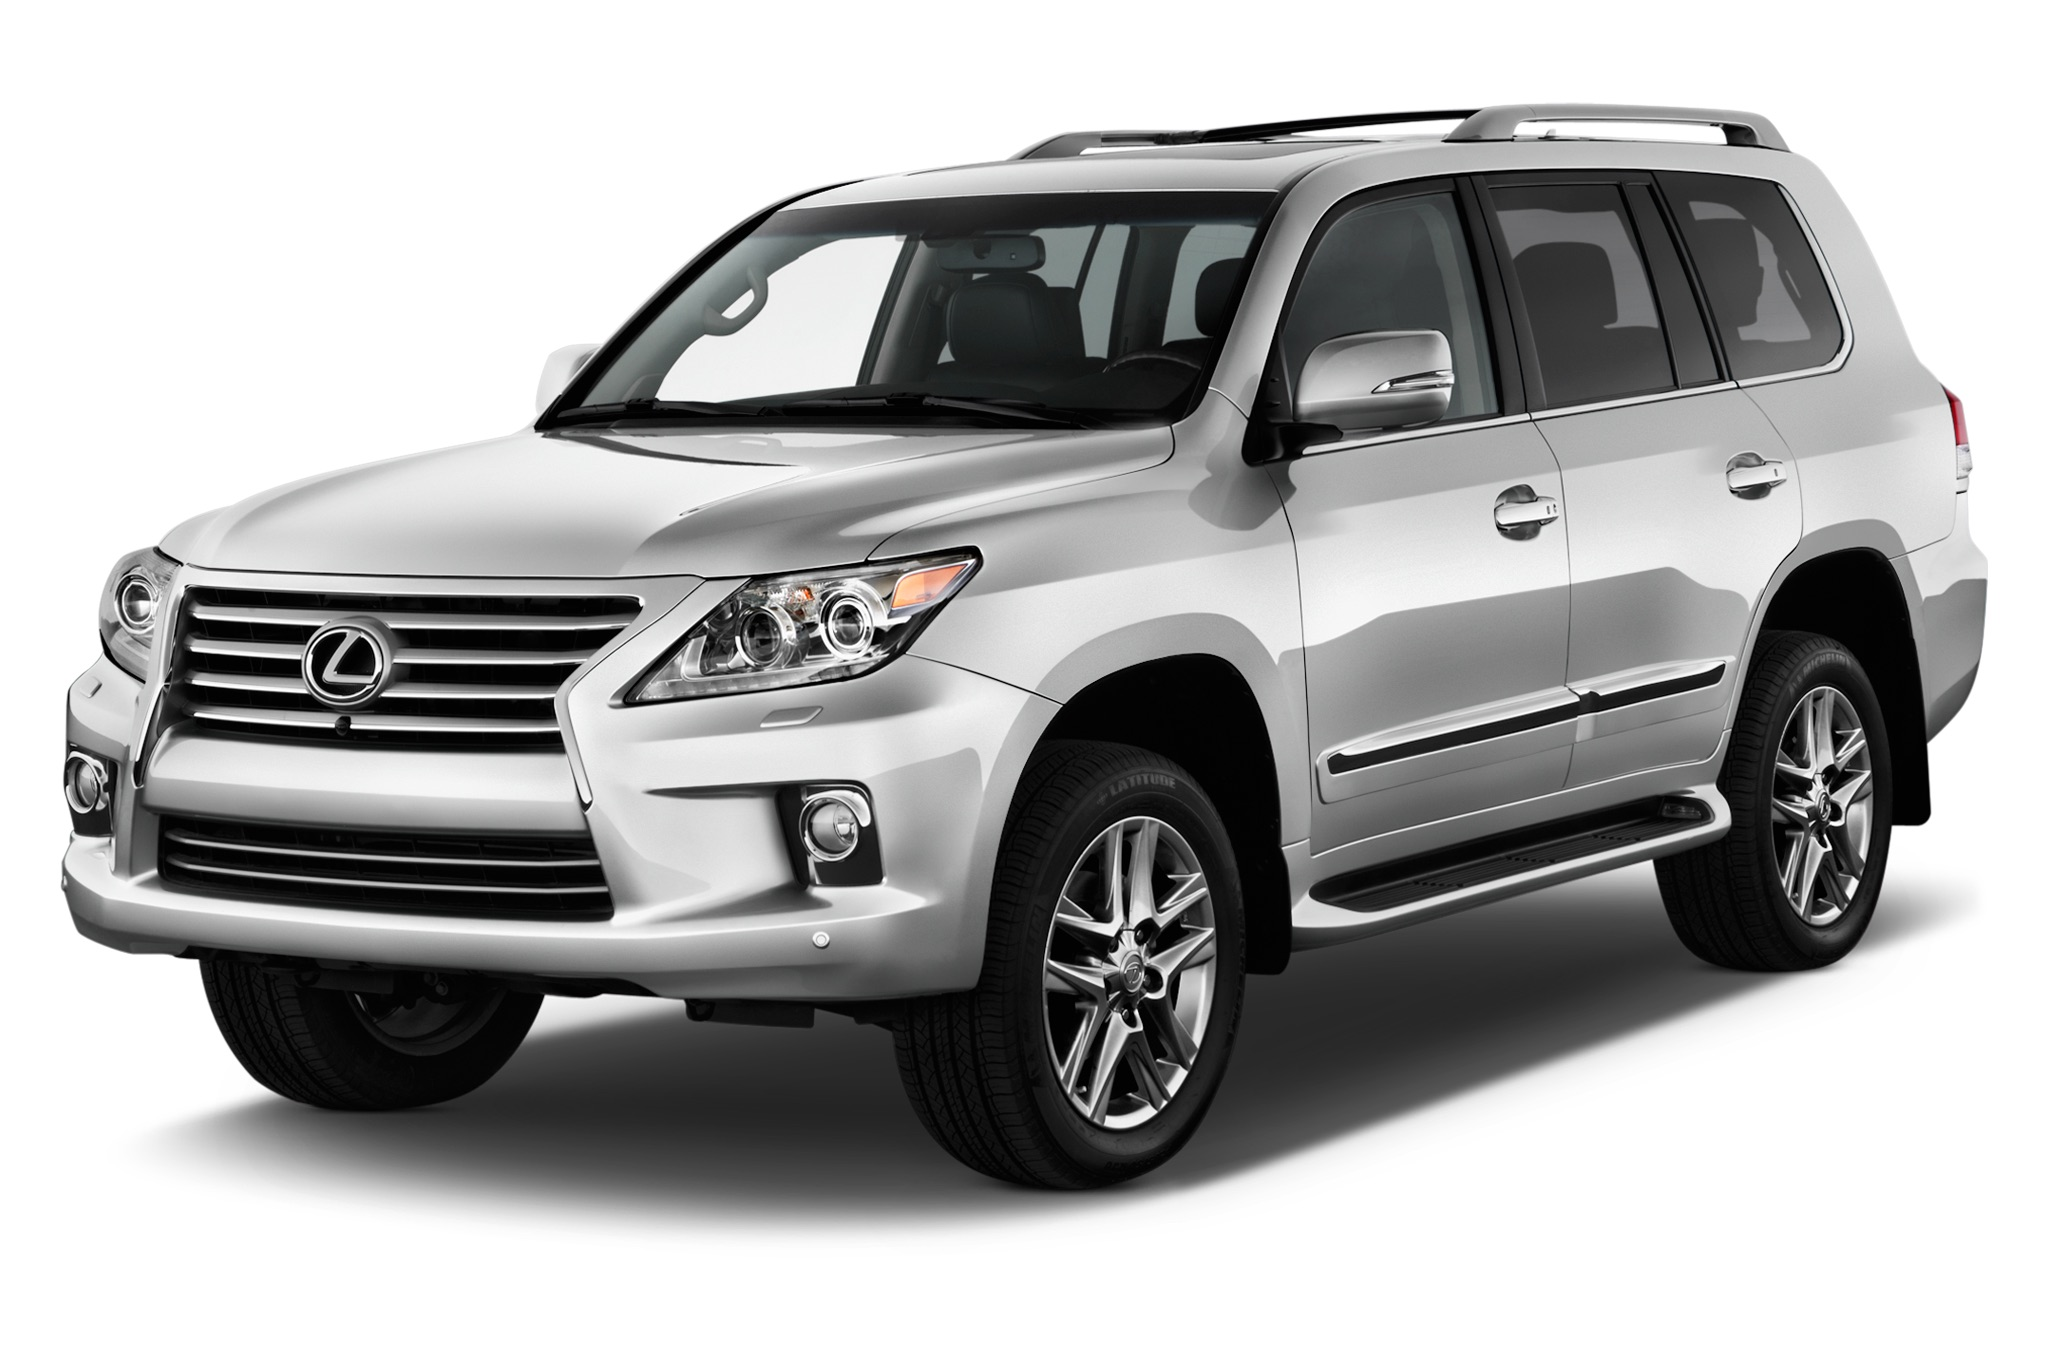 Lexus Lx 450 Wiring Diagram Schematic Diagrams 08 Ls 570 Multi Display Electrical 350 Review